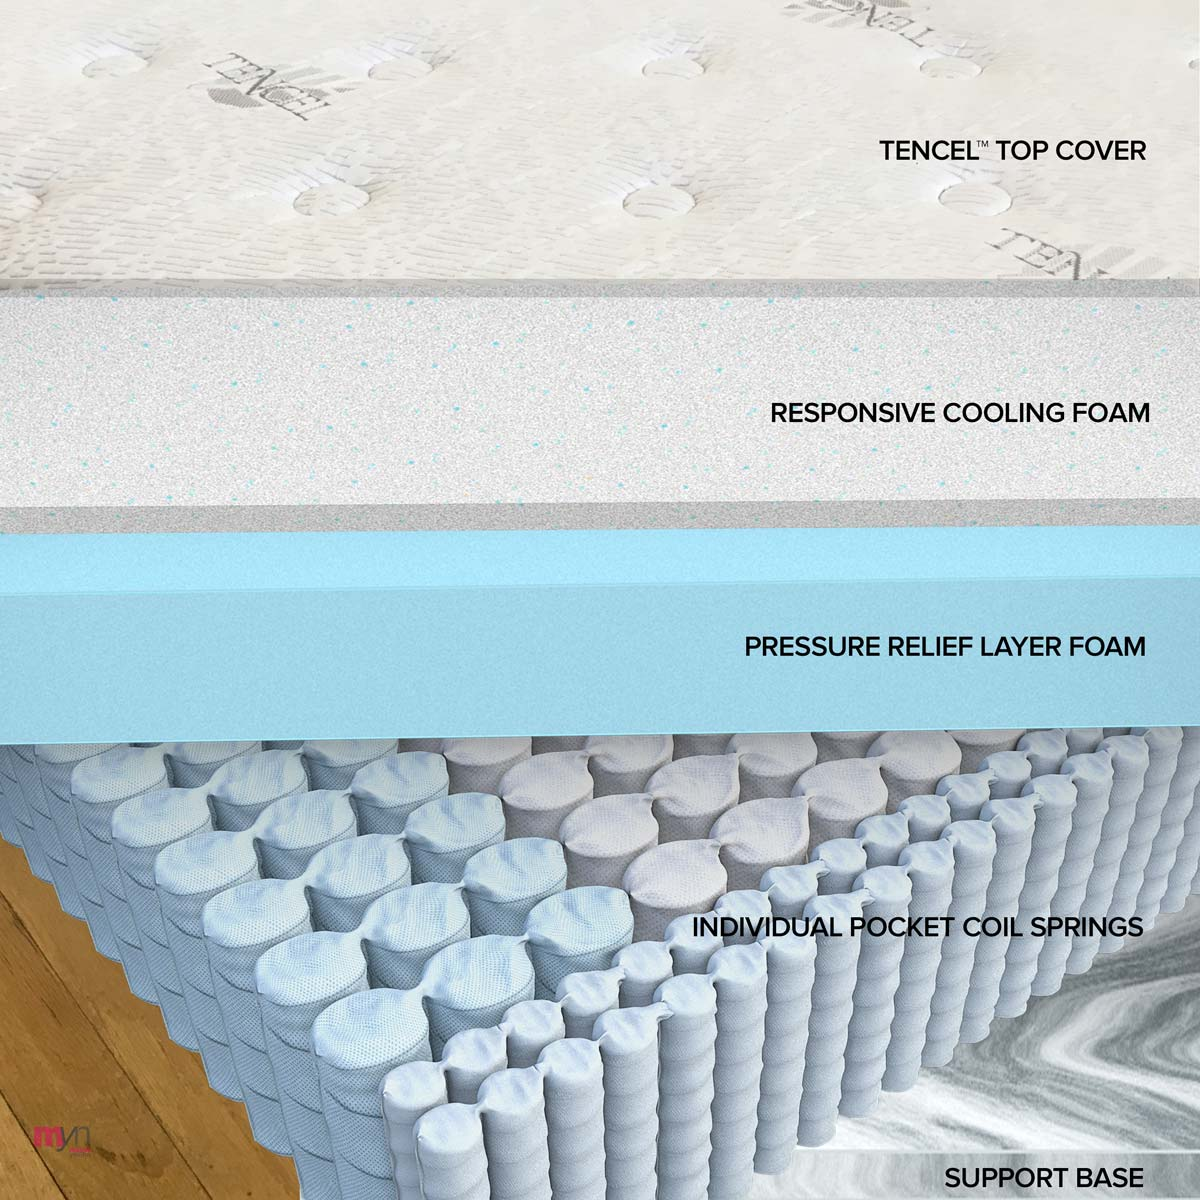 THE LAYERS UNDER THE COVER S OF A BOLSTER SLEEP MATTRESS ¹ Research conducted by Kansas State University and the Institute of Environmental Research